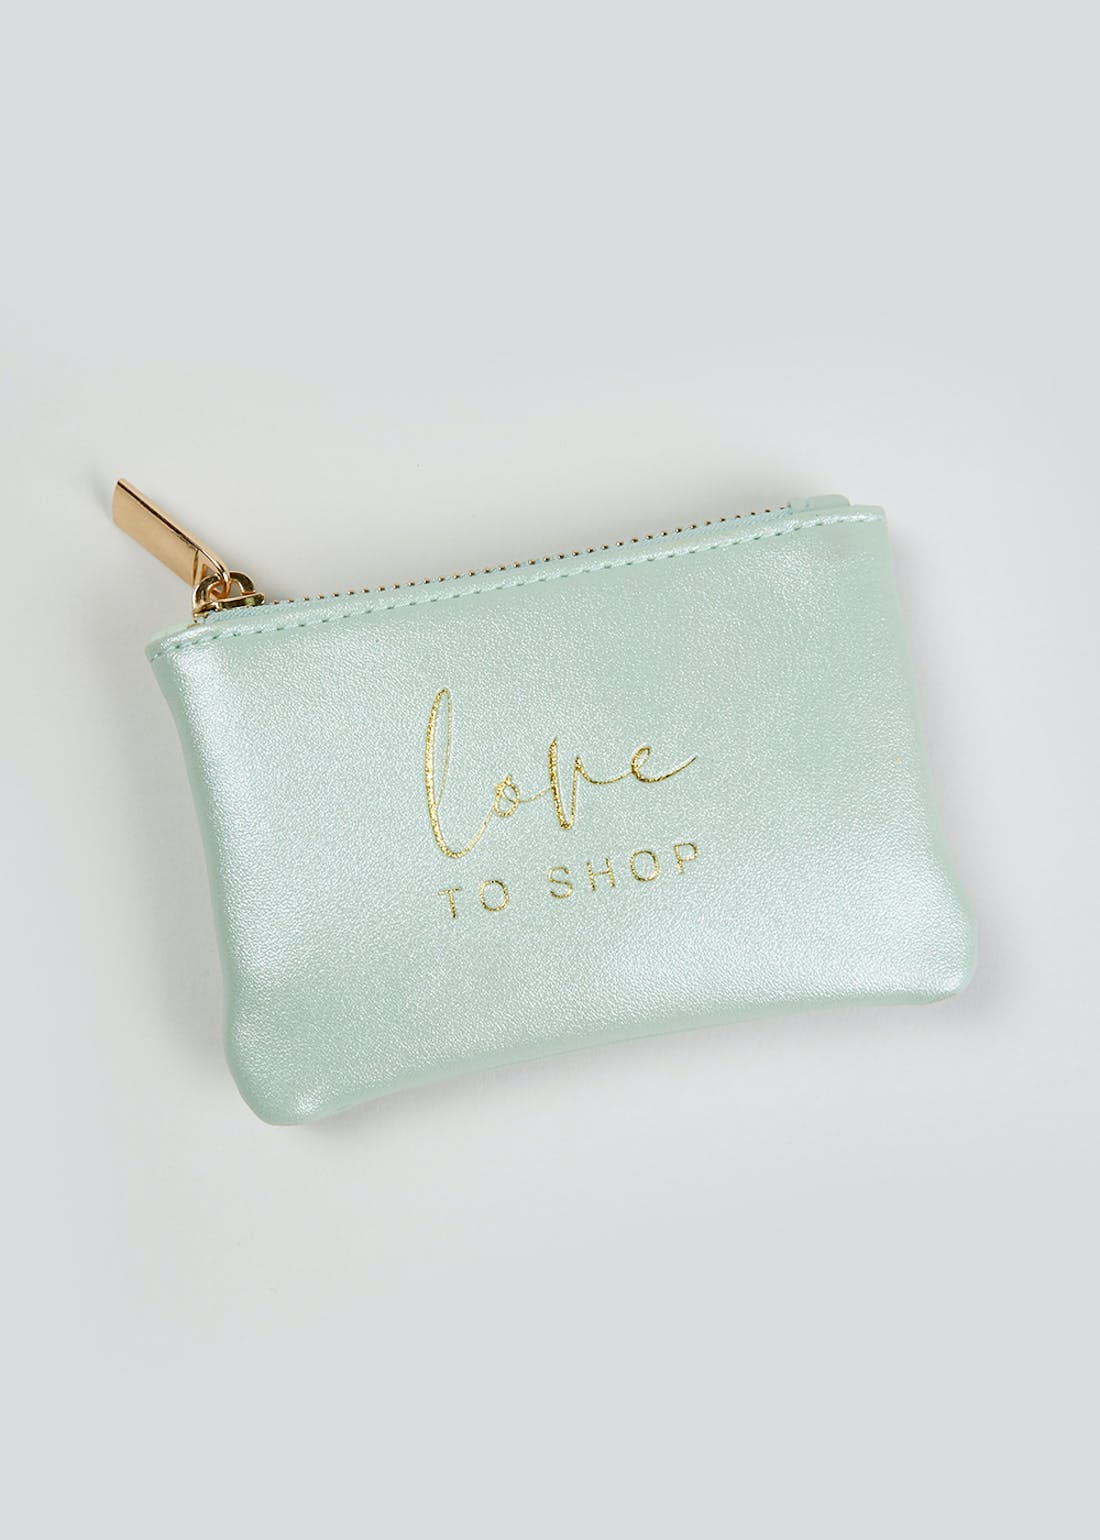 Love to Shop Purse (12.5cm x 9cm)